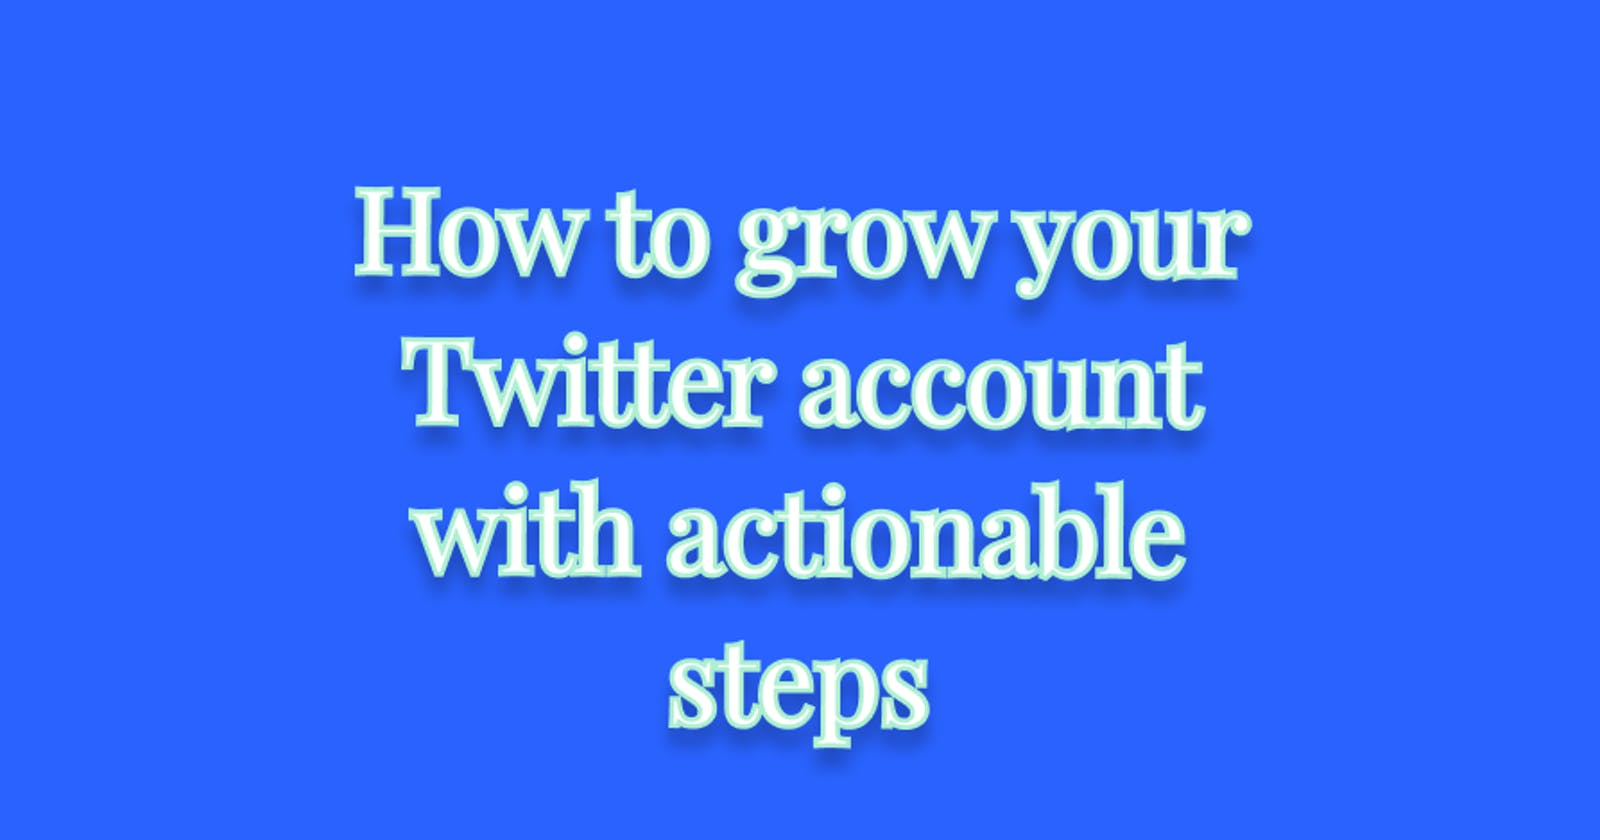 How to grow your Twitter account with actionable steps